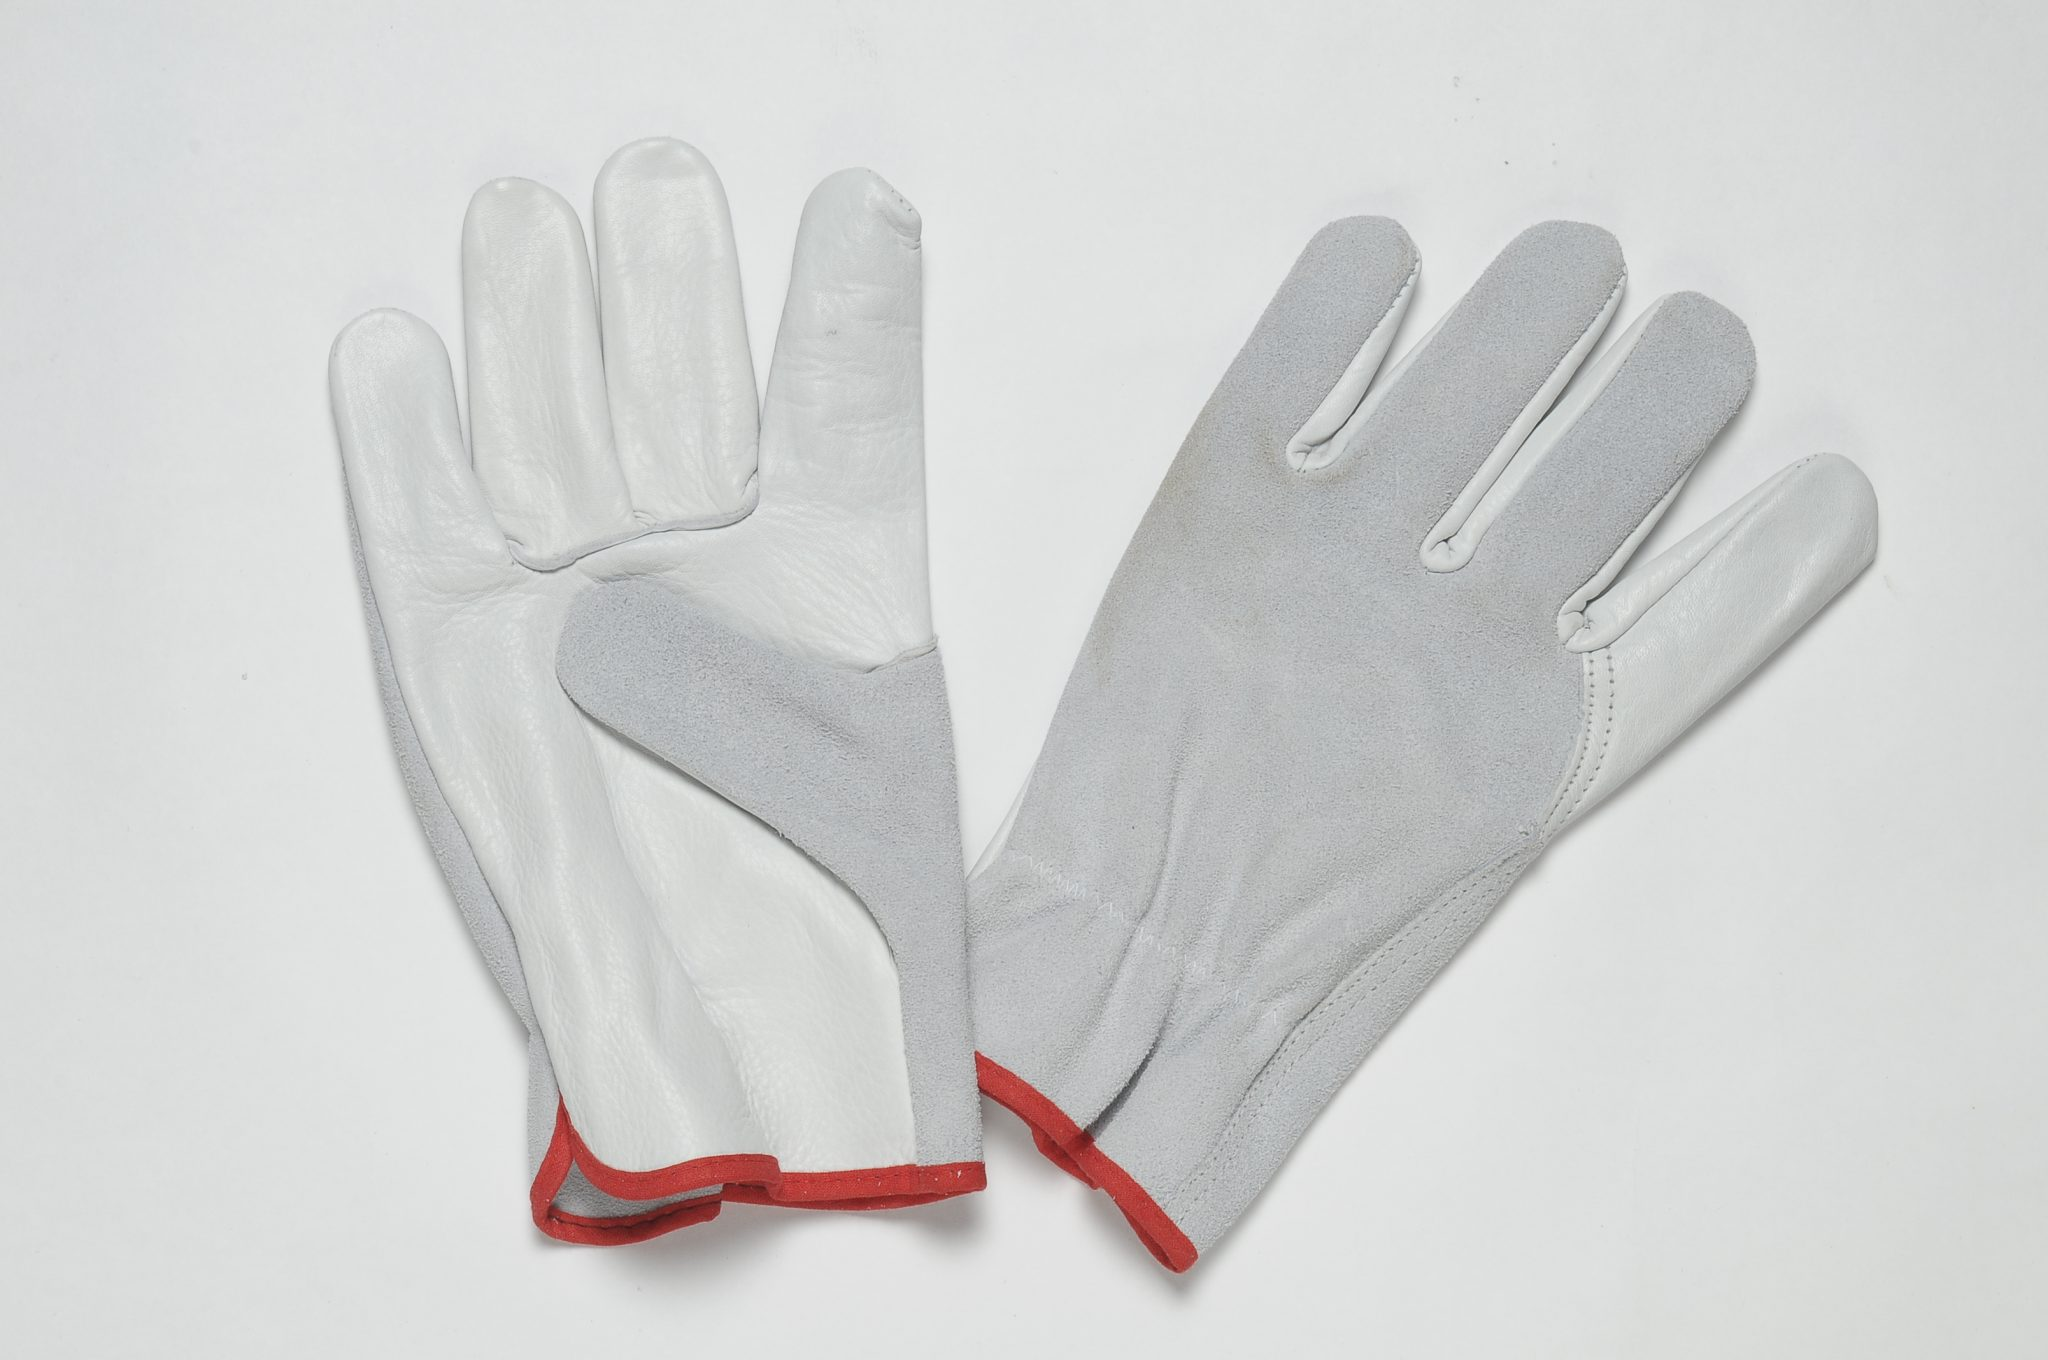 NATURAL LEATHER GLOVES WITH GRAIN ON PALM, THUMB AND FOREFINGER, NATURAL SPLIT BACK, ADJUSTABLE ELASTIC IN THE WRIST, COLOURED BINDING